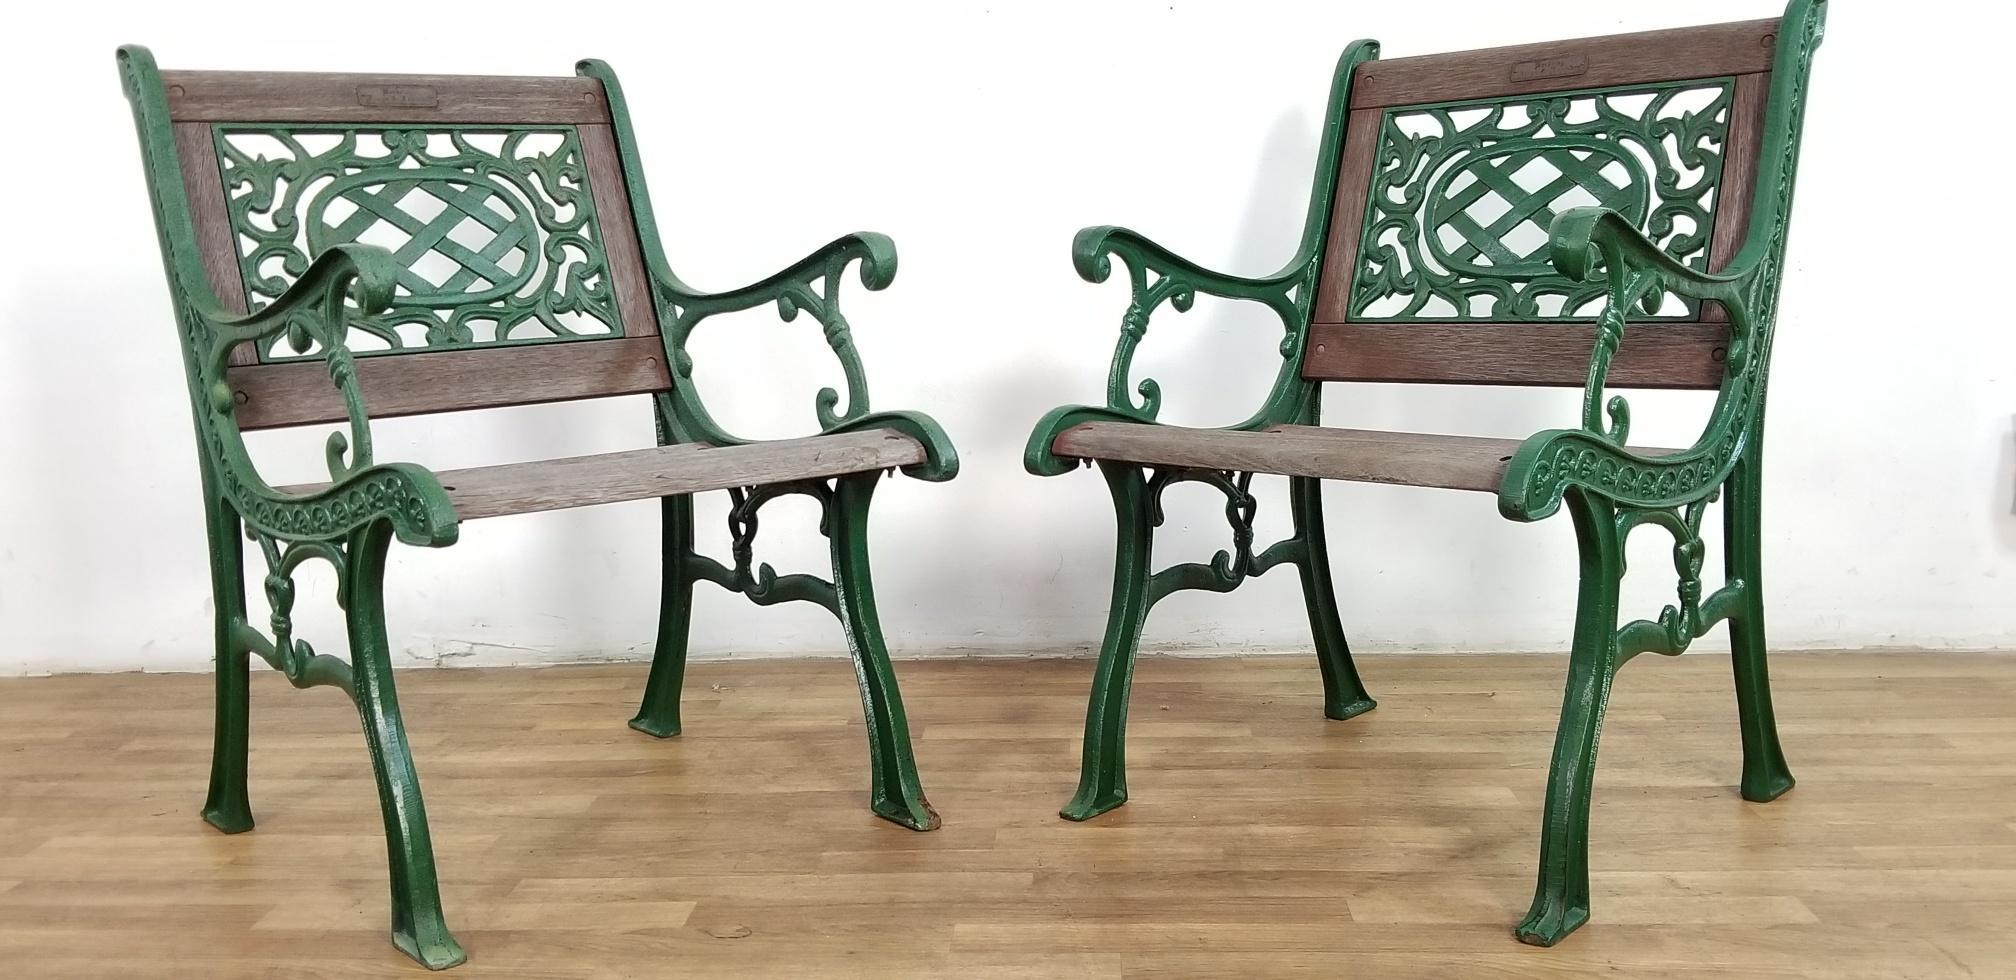 1960s Vintage Wrought Iron Berkeley Forge U0026 Foundry Park Chairs  Set Of 6  For Sale